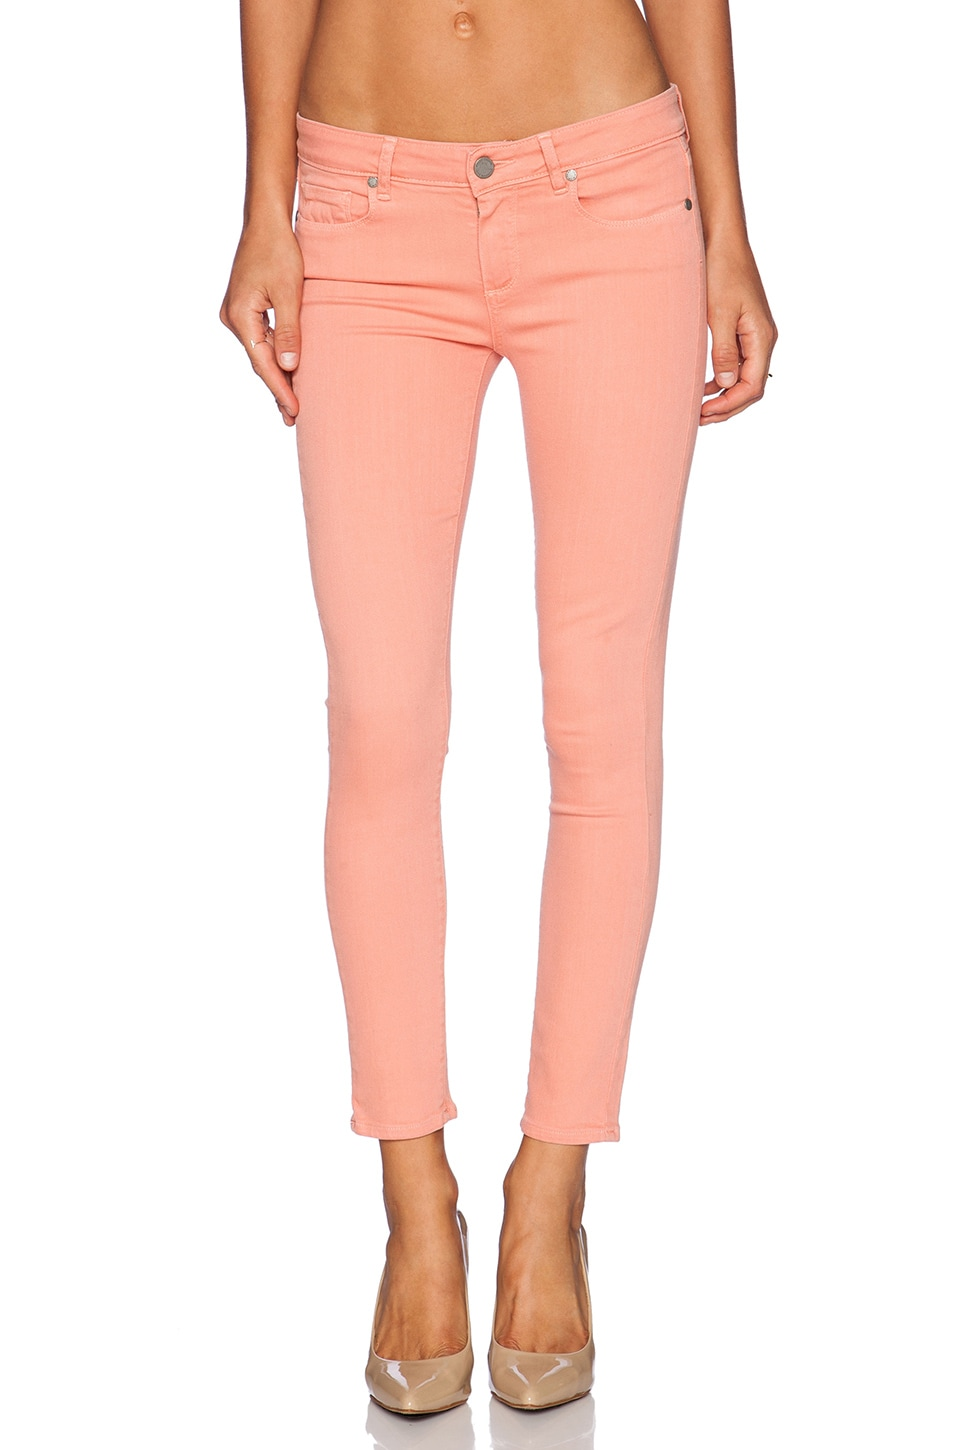 PAIGE JEAN CROPPED VERDUGO ANKLE